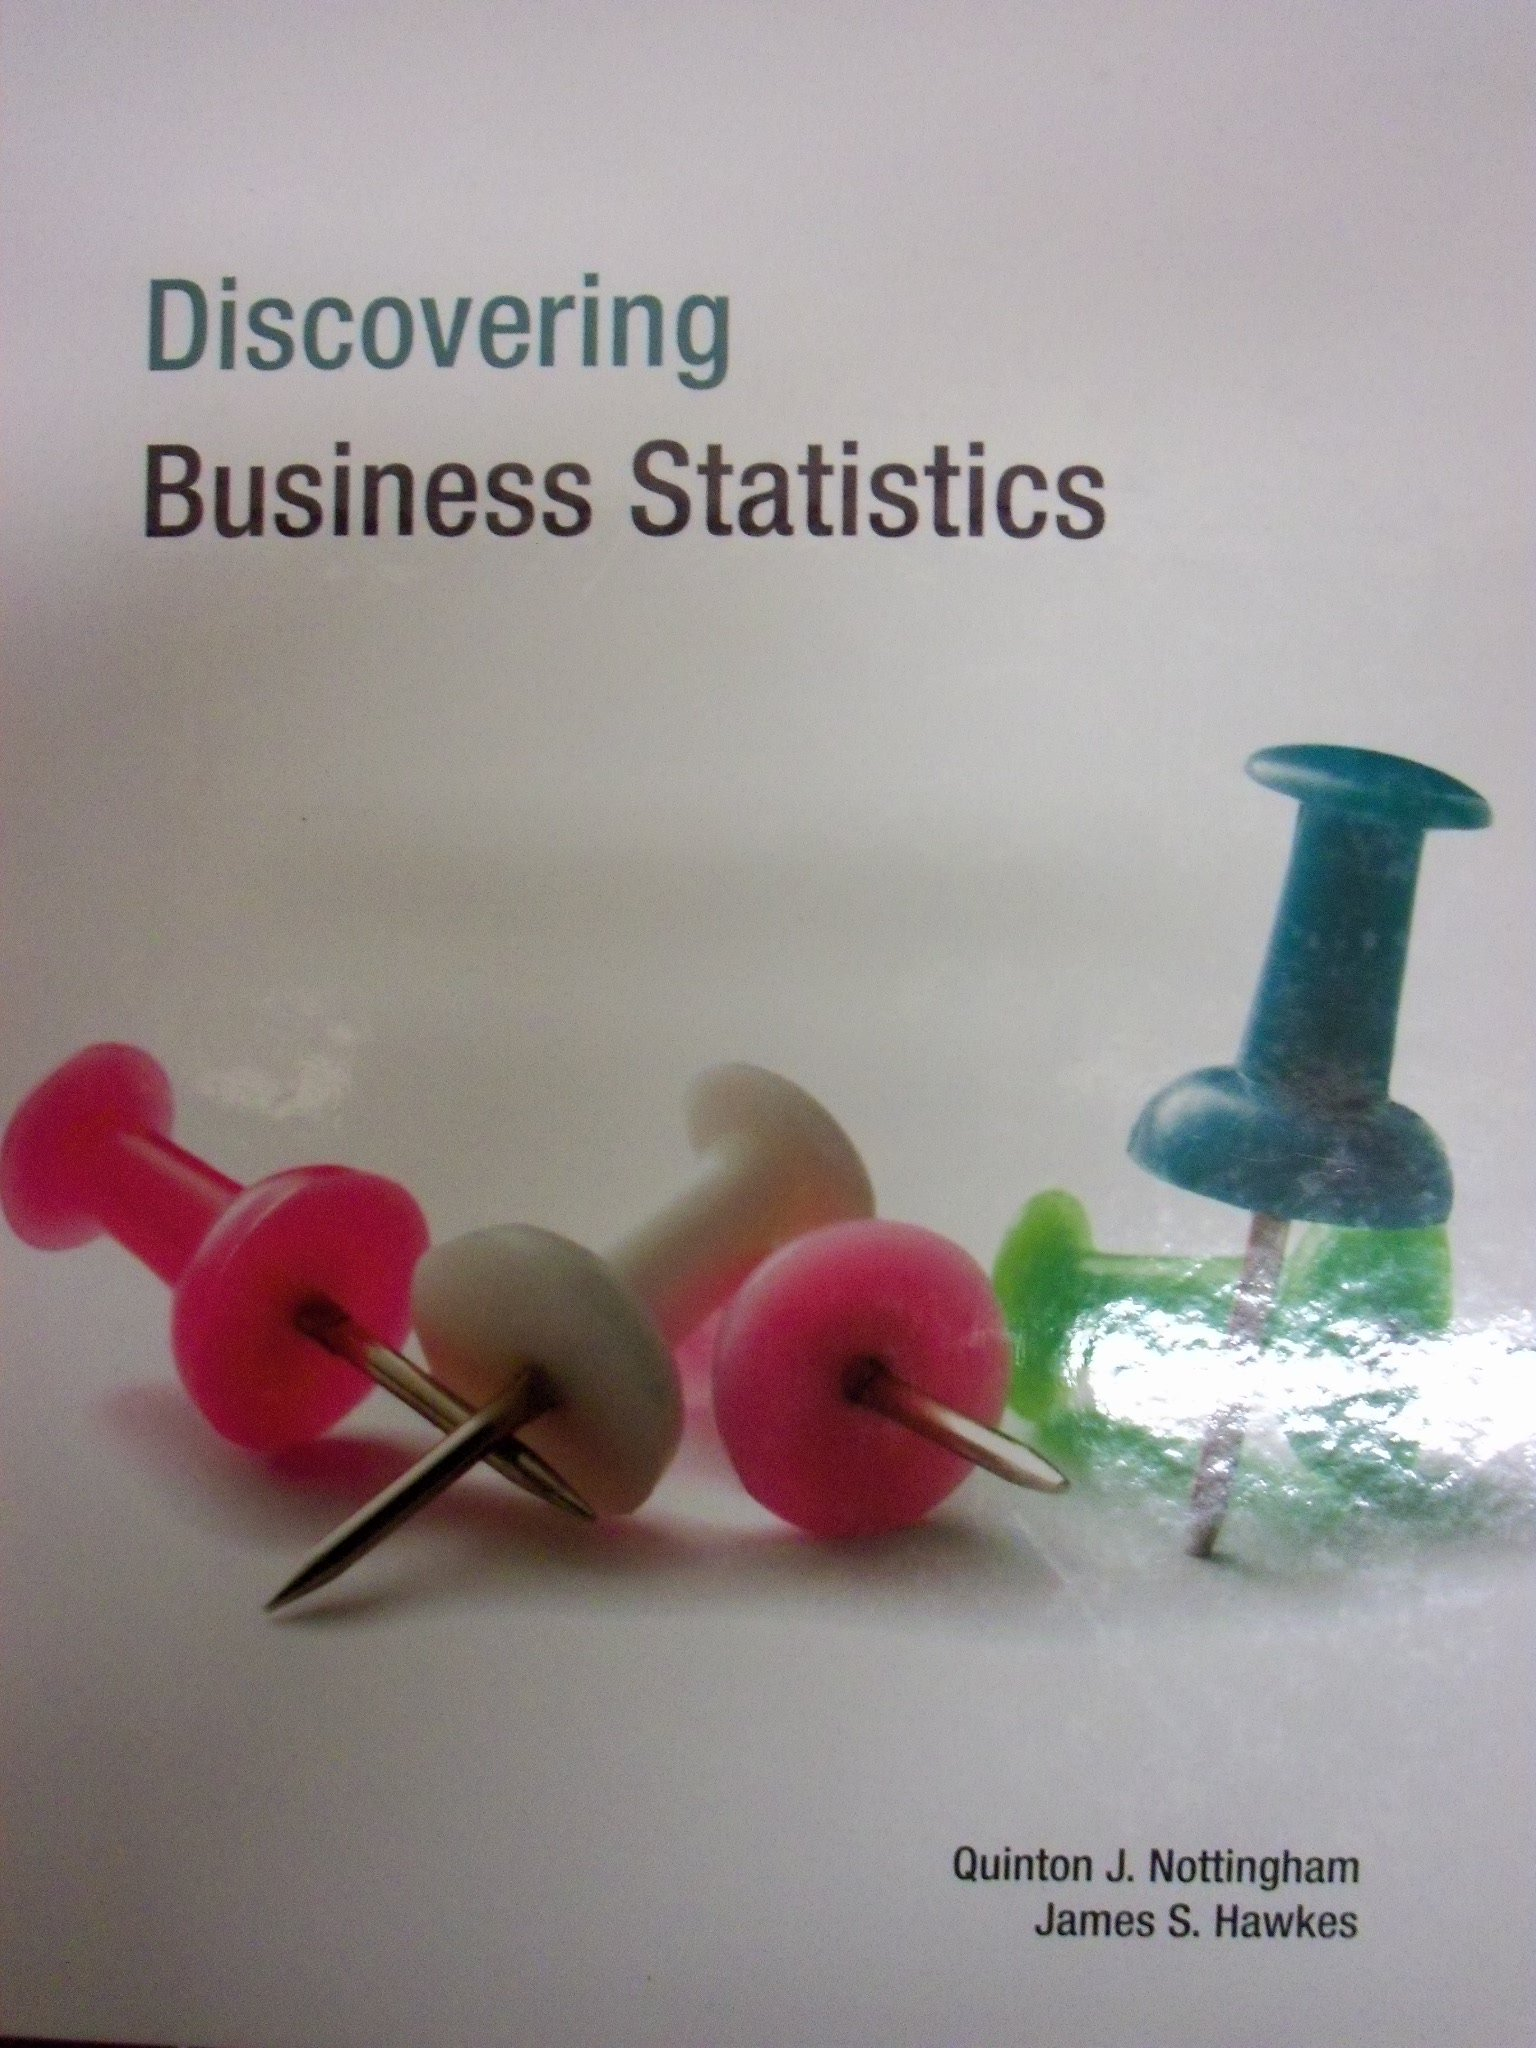 Discovering business statistics textbook quinton jhawkes james s discovering business statistics textbook quinton jhawkes james s nottingham 9781935782872 amazon books fandeluxe Gallery